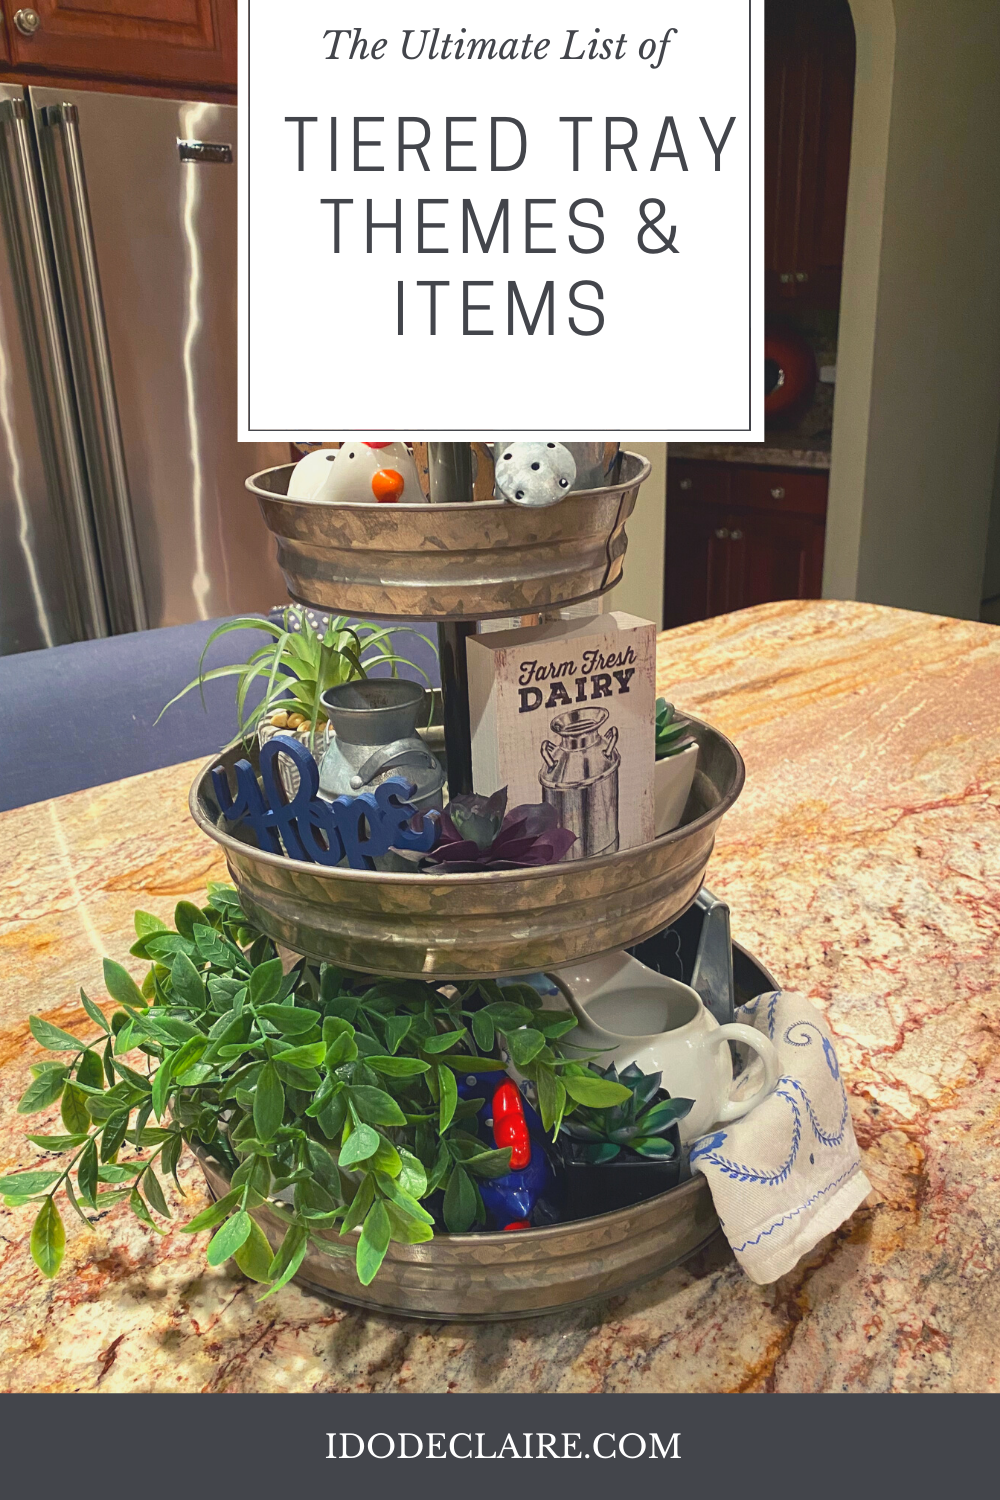 The Ultimate List of Tiered Tray Themes & Items!